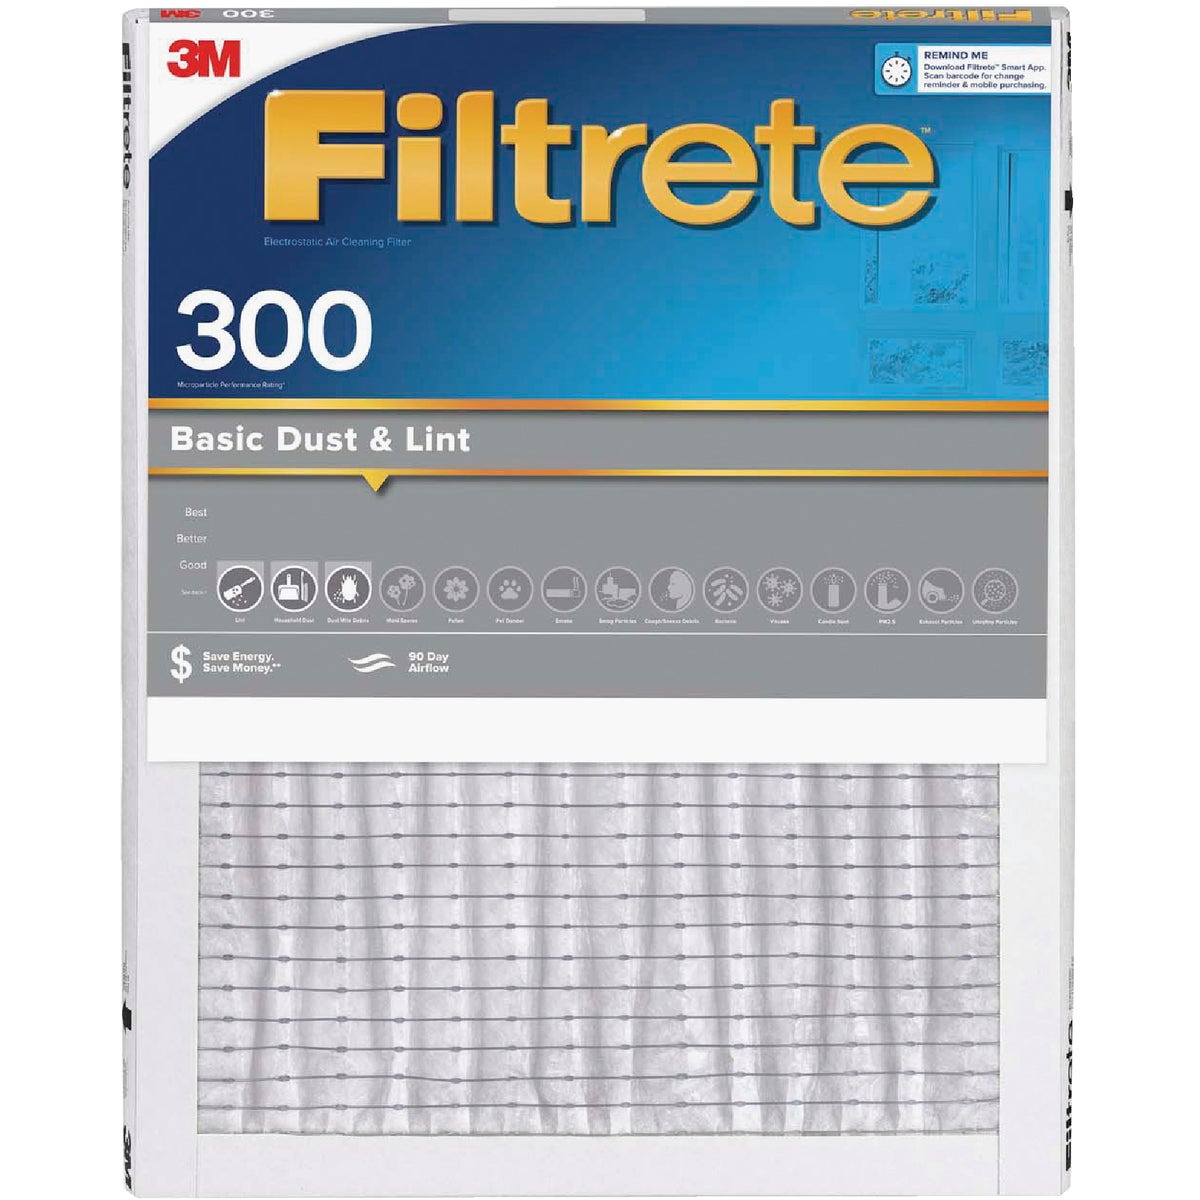 3M Filtrete 16 In. x 20 In. x 1 In. Dust Reduction 300 MPR Furnace Filter